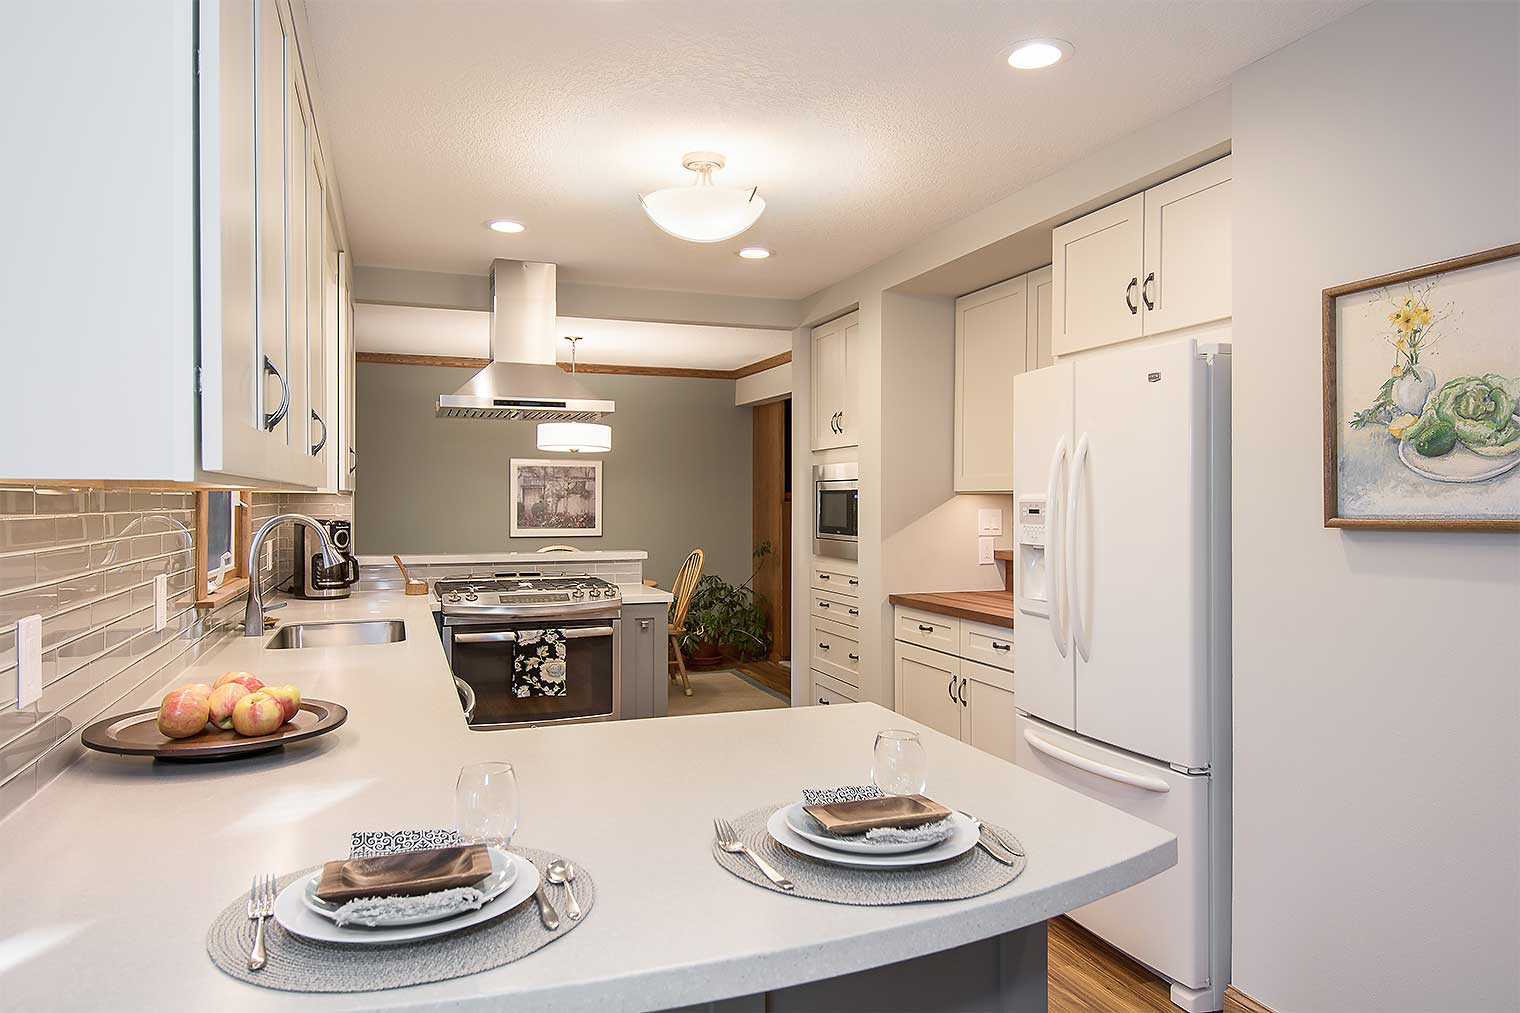 97 Woodharbor Cabinets Des Moines Creative Countertops